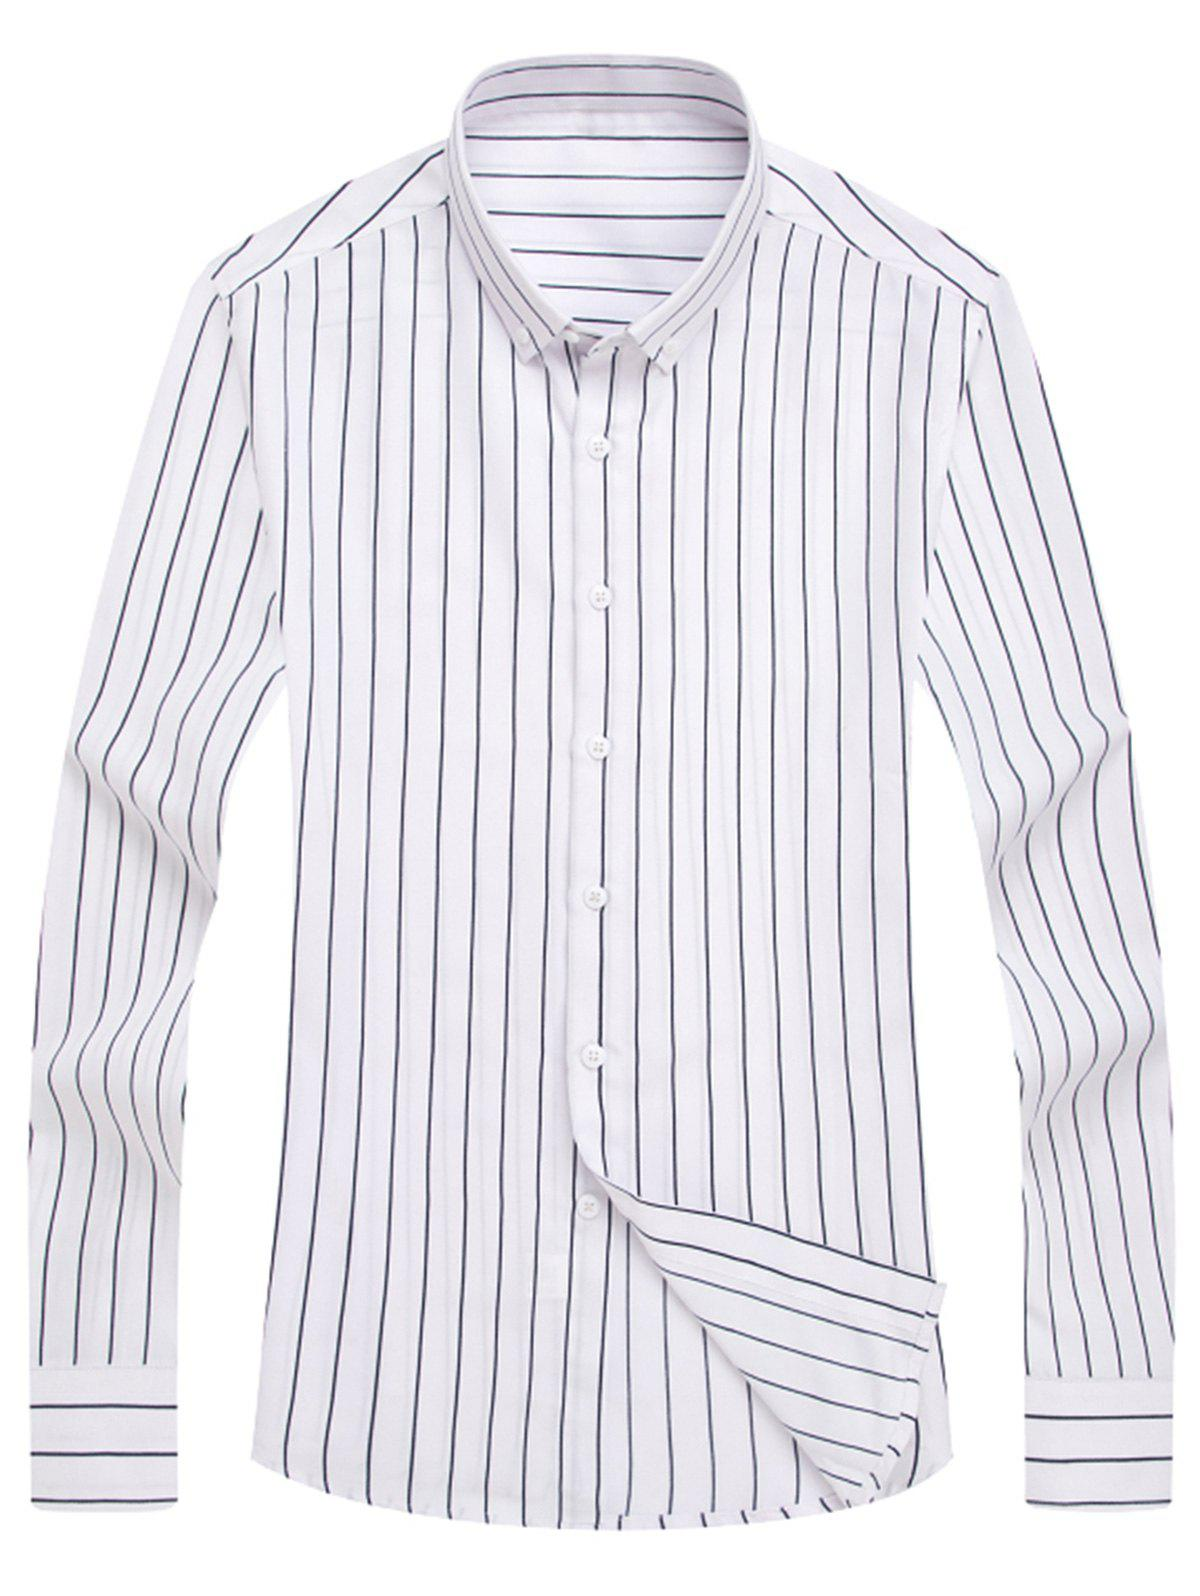 2018 Classic Pinstripe Printed Button Down Shirt WHITE XL In ...